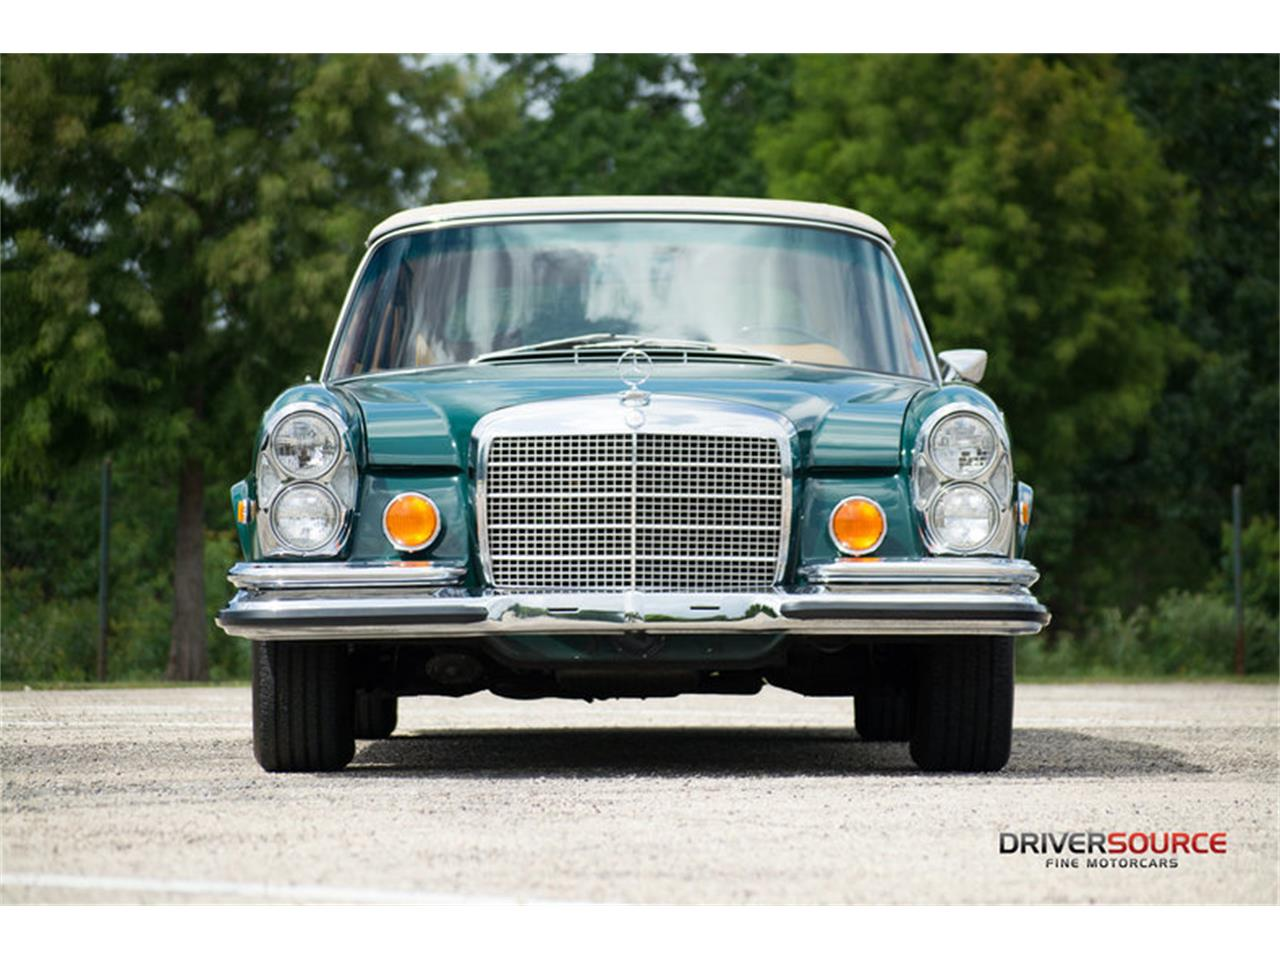 Large Picture of Classic '71 280SE - $395,000.00 Offered by Driversource - LAC0